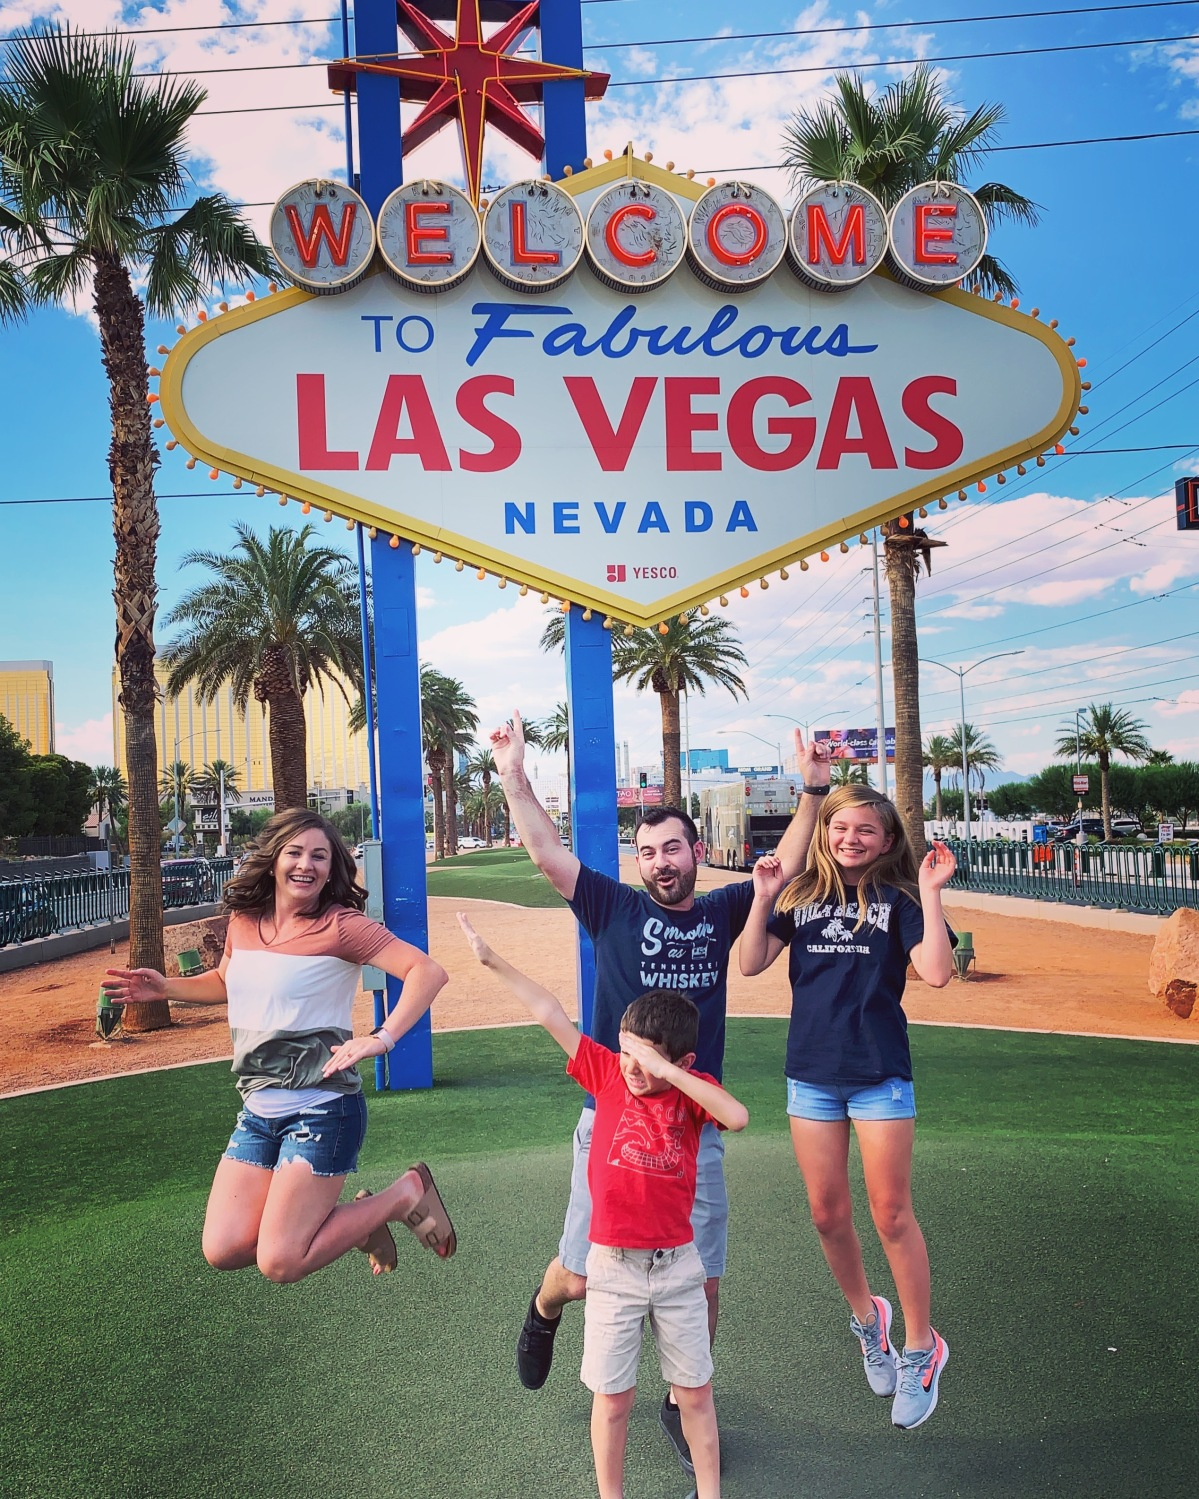 Visit Las Vegas While It's Cool!